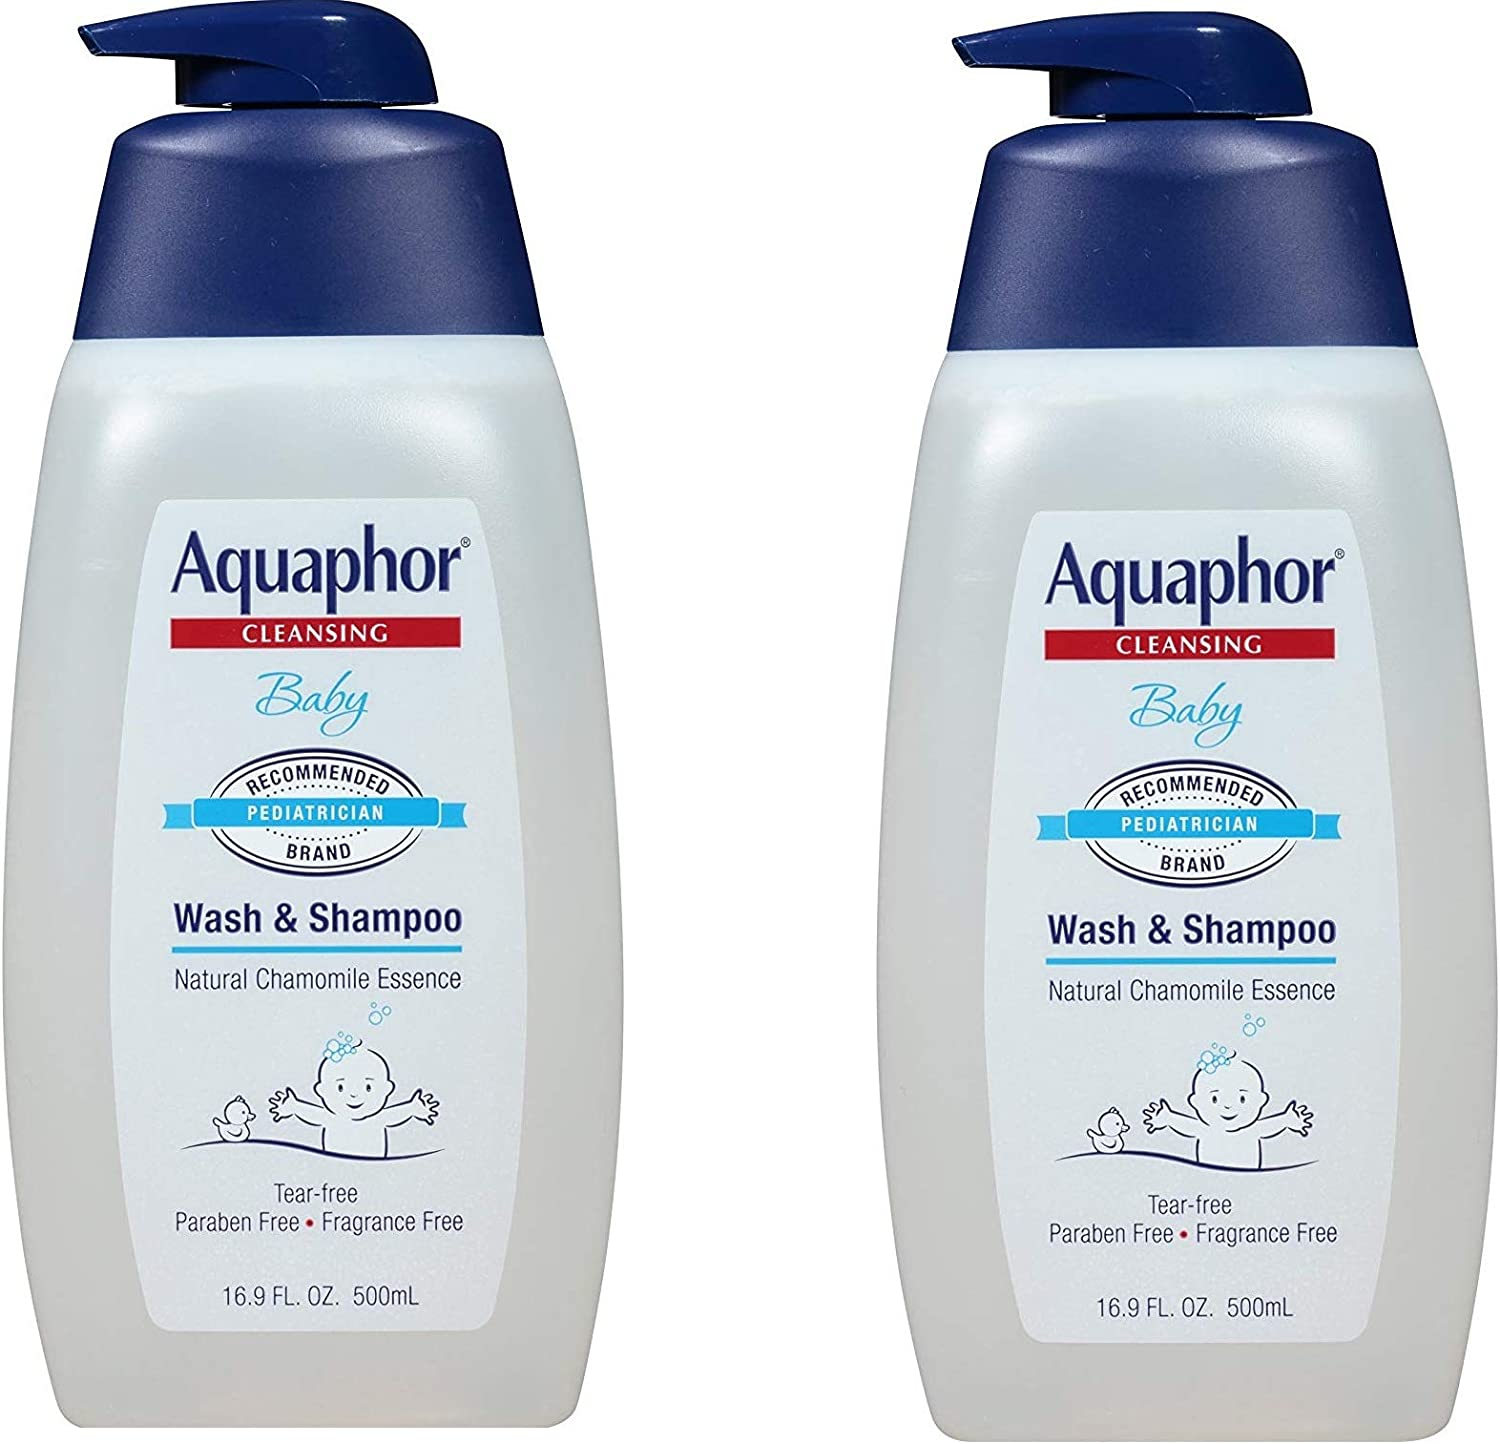 Aquaphor Baby Wash and Shampoo - Mild, Tear-free 2-in-1 Solution for Babyâ€s Sensitive Skin - 16.9 fl. oz. Pump, 2 Pack